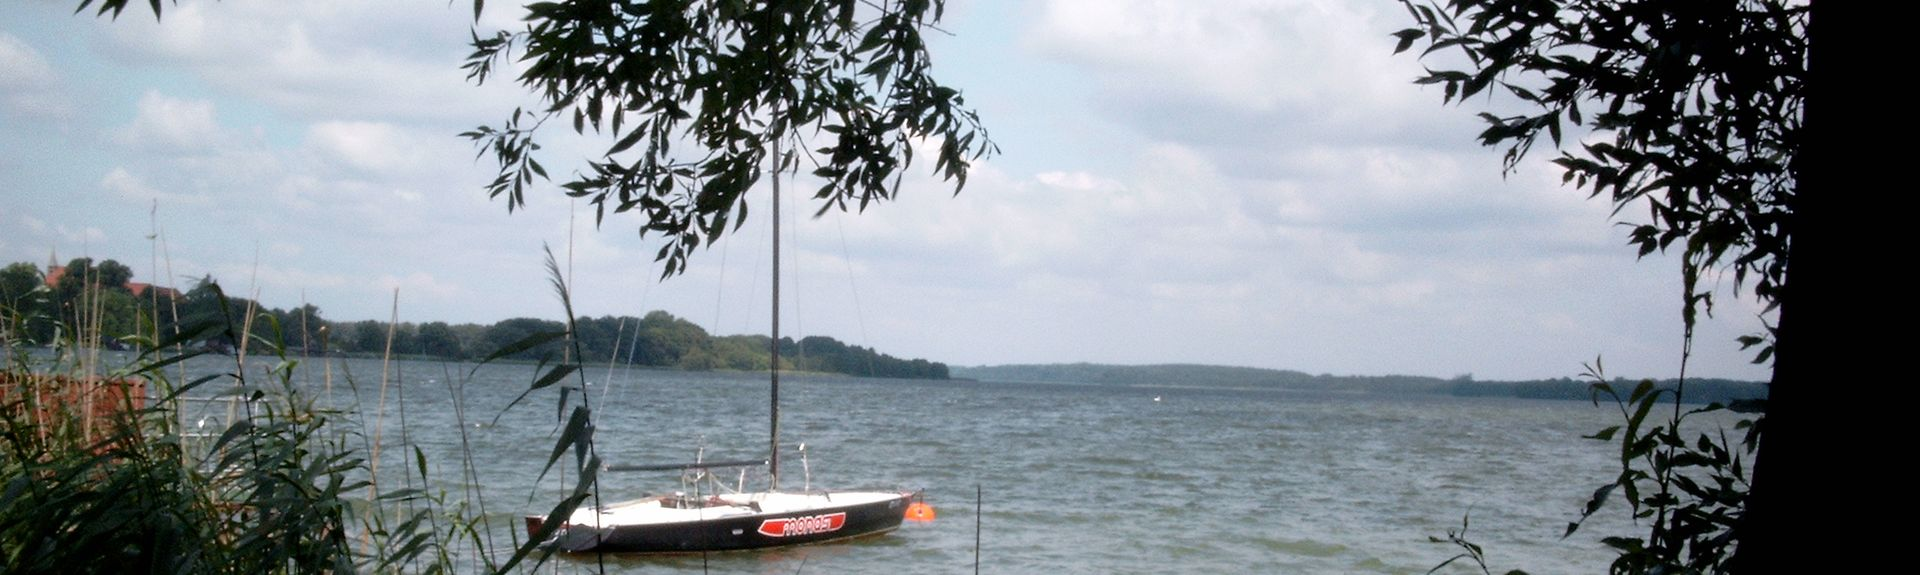 Zarrentin am Schaalsee, MV, Niemcy